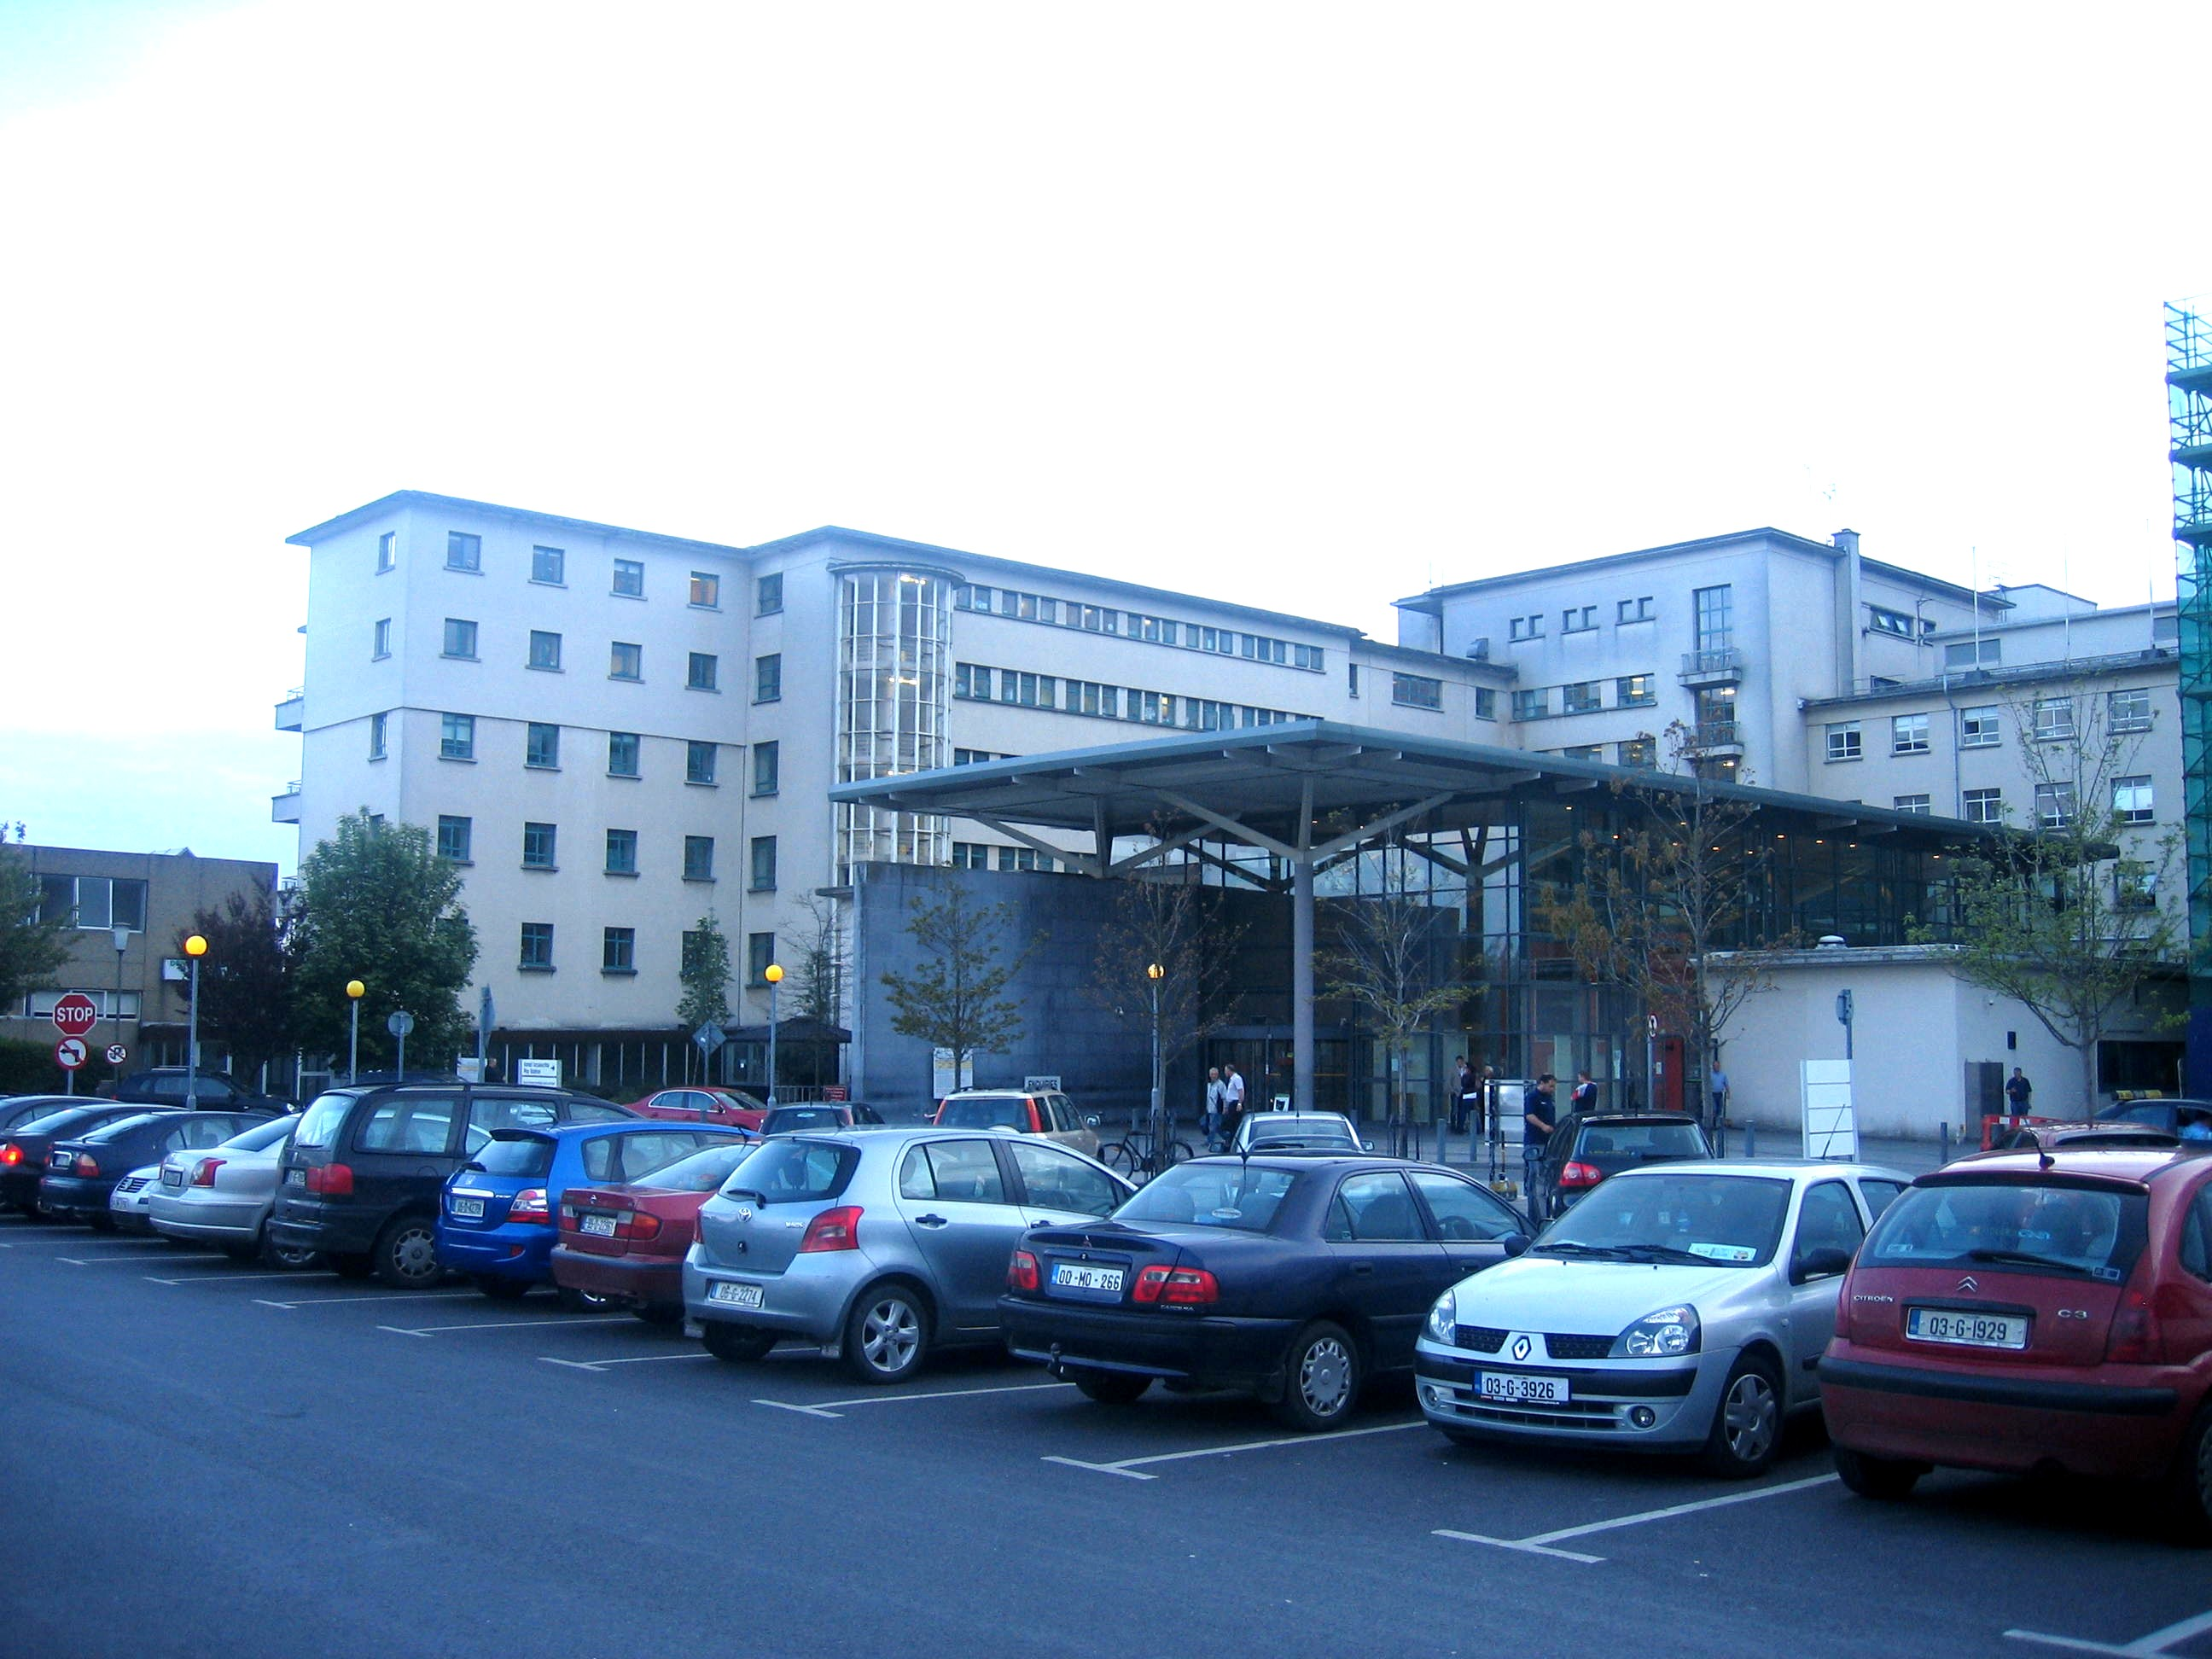 UHG is the second most overcrowded hospital in Ireland today